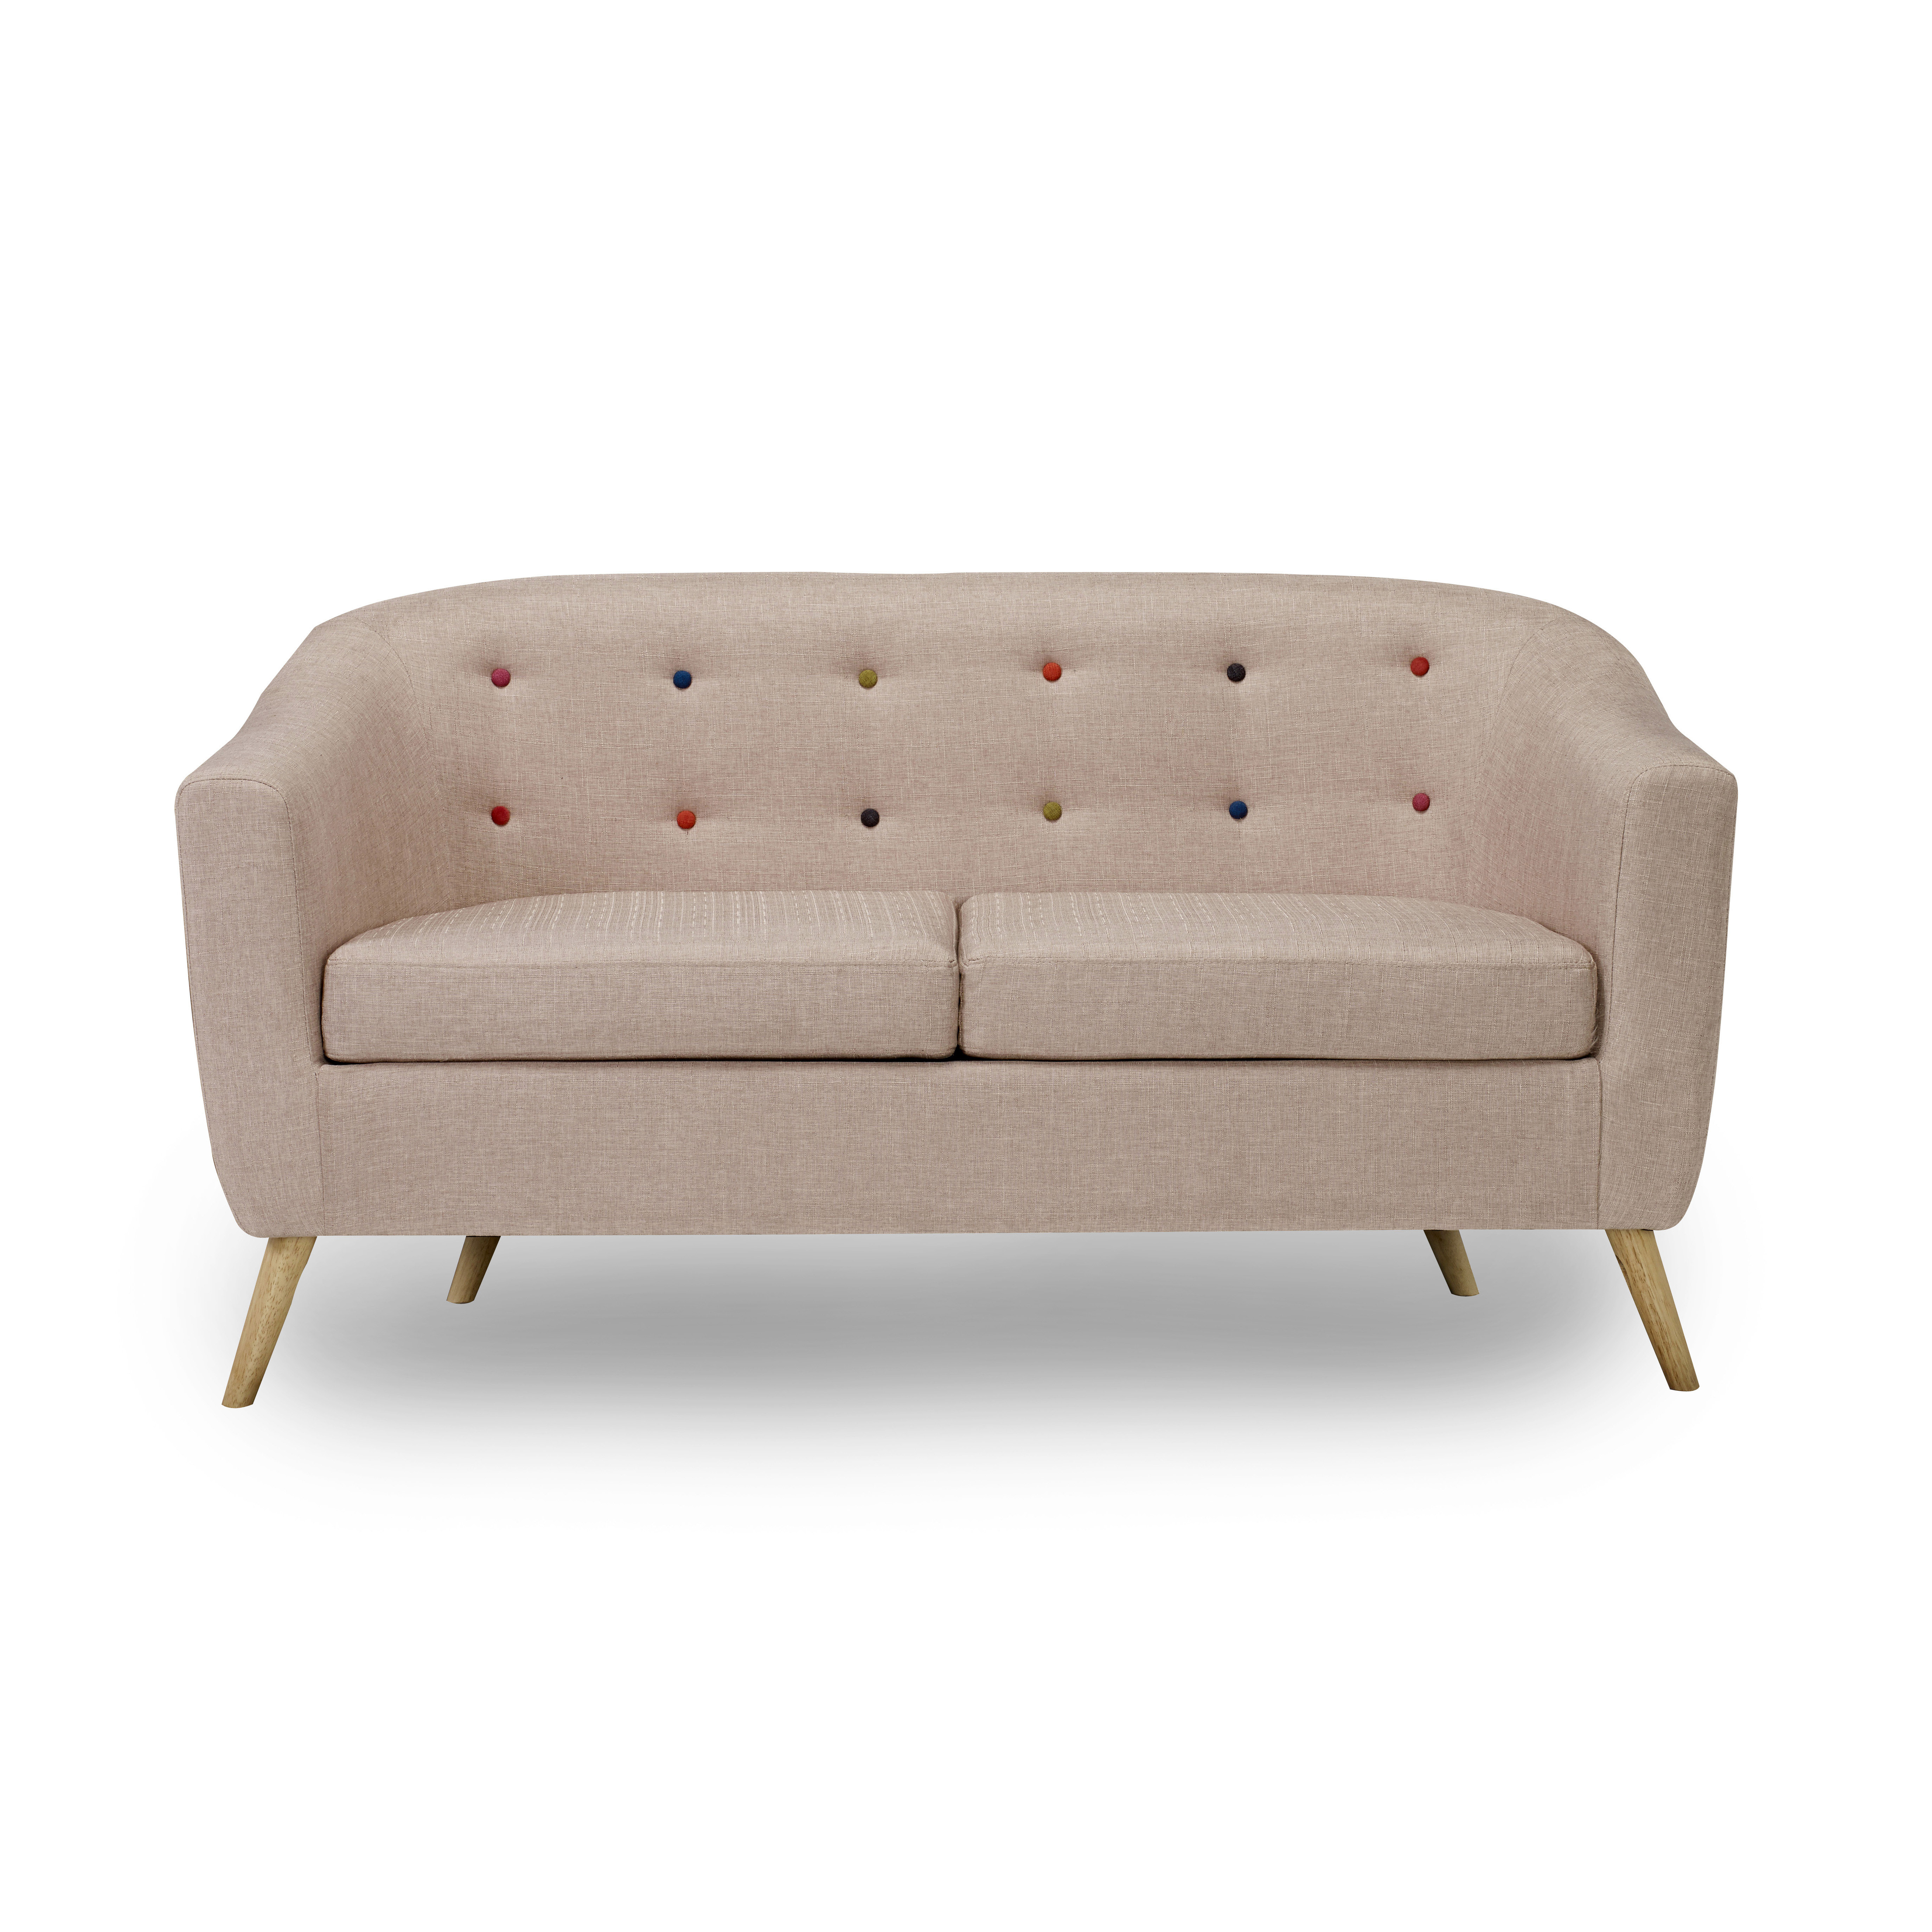 Hudson Sofa With Buttons Beige